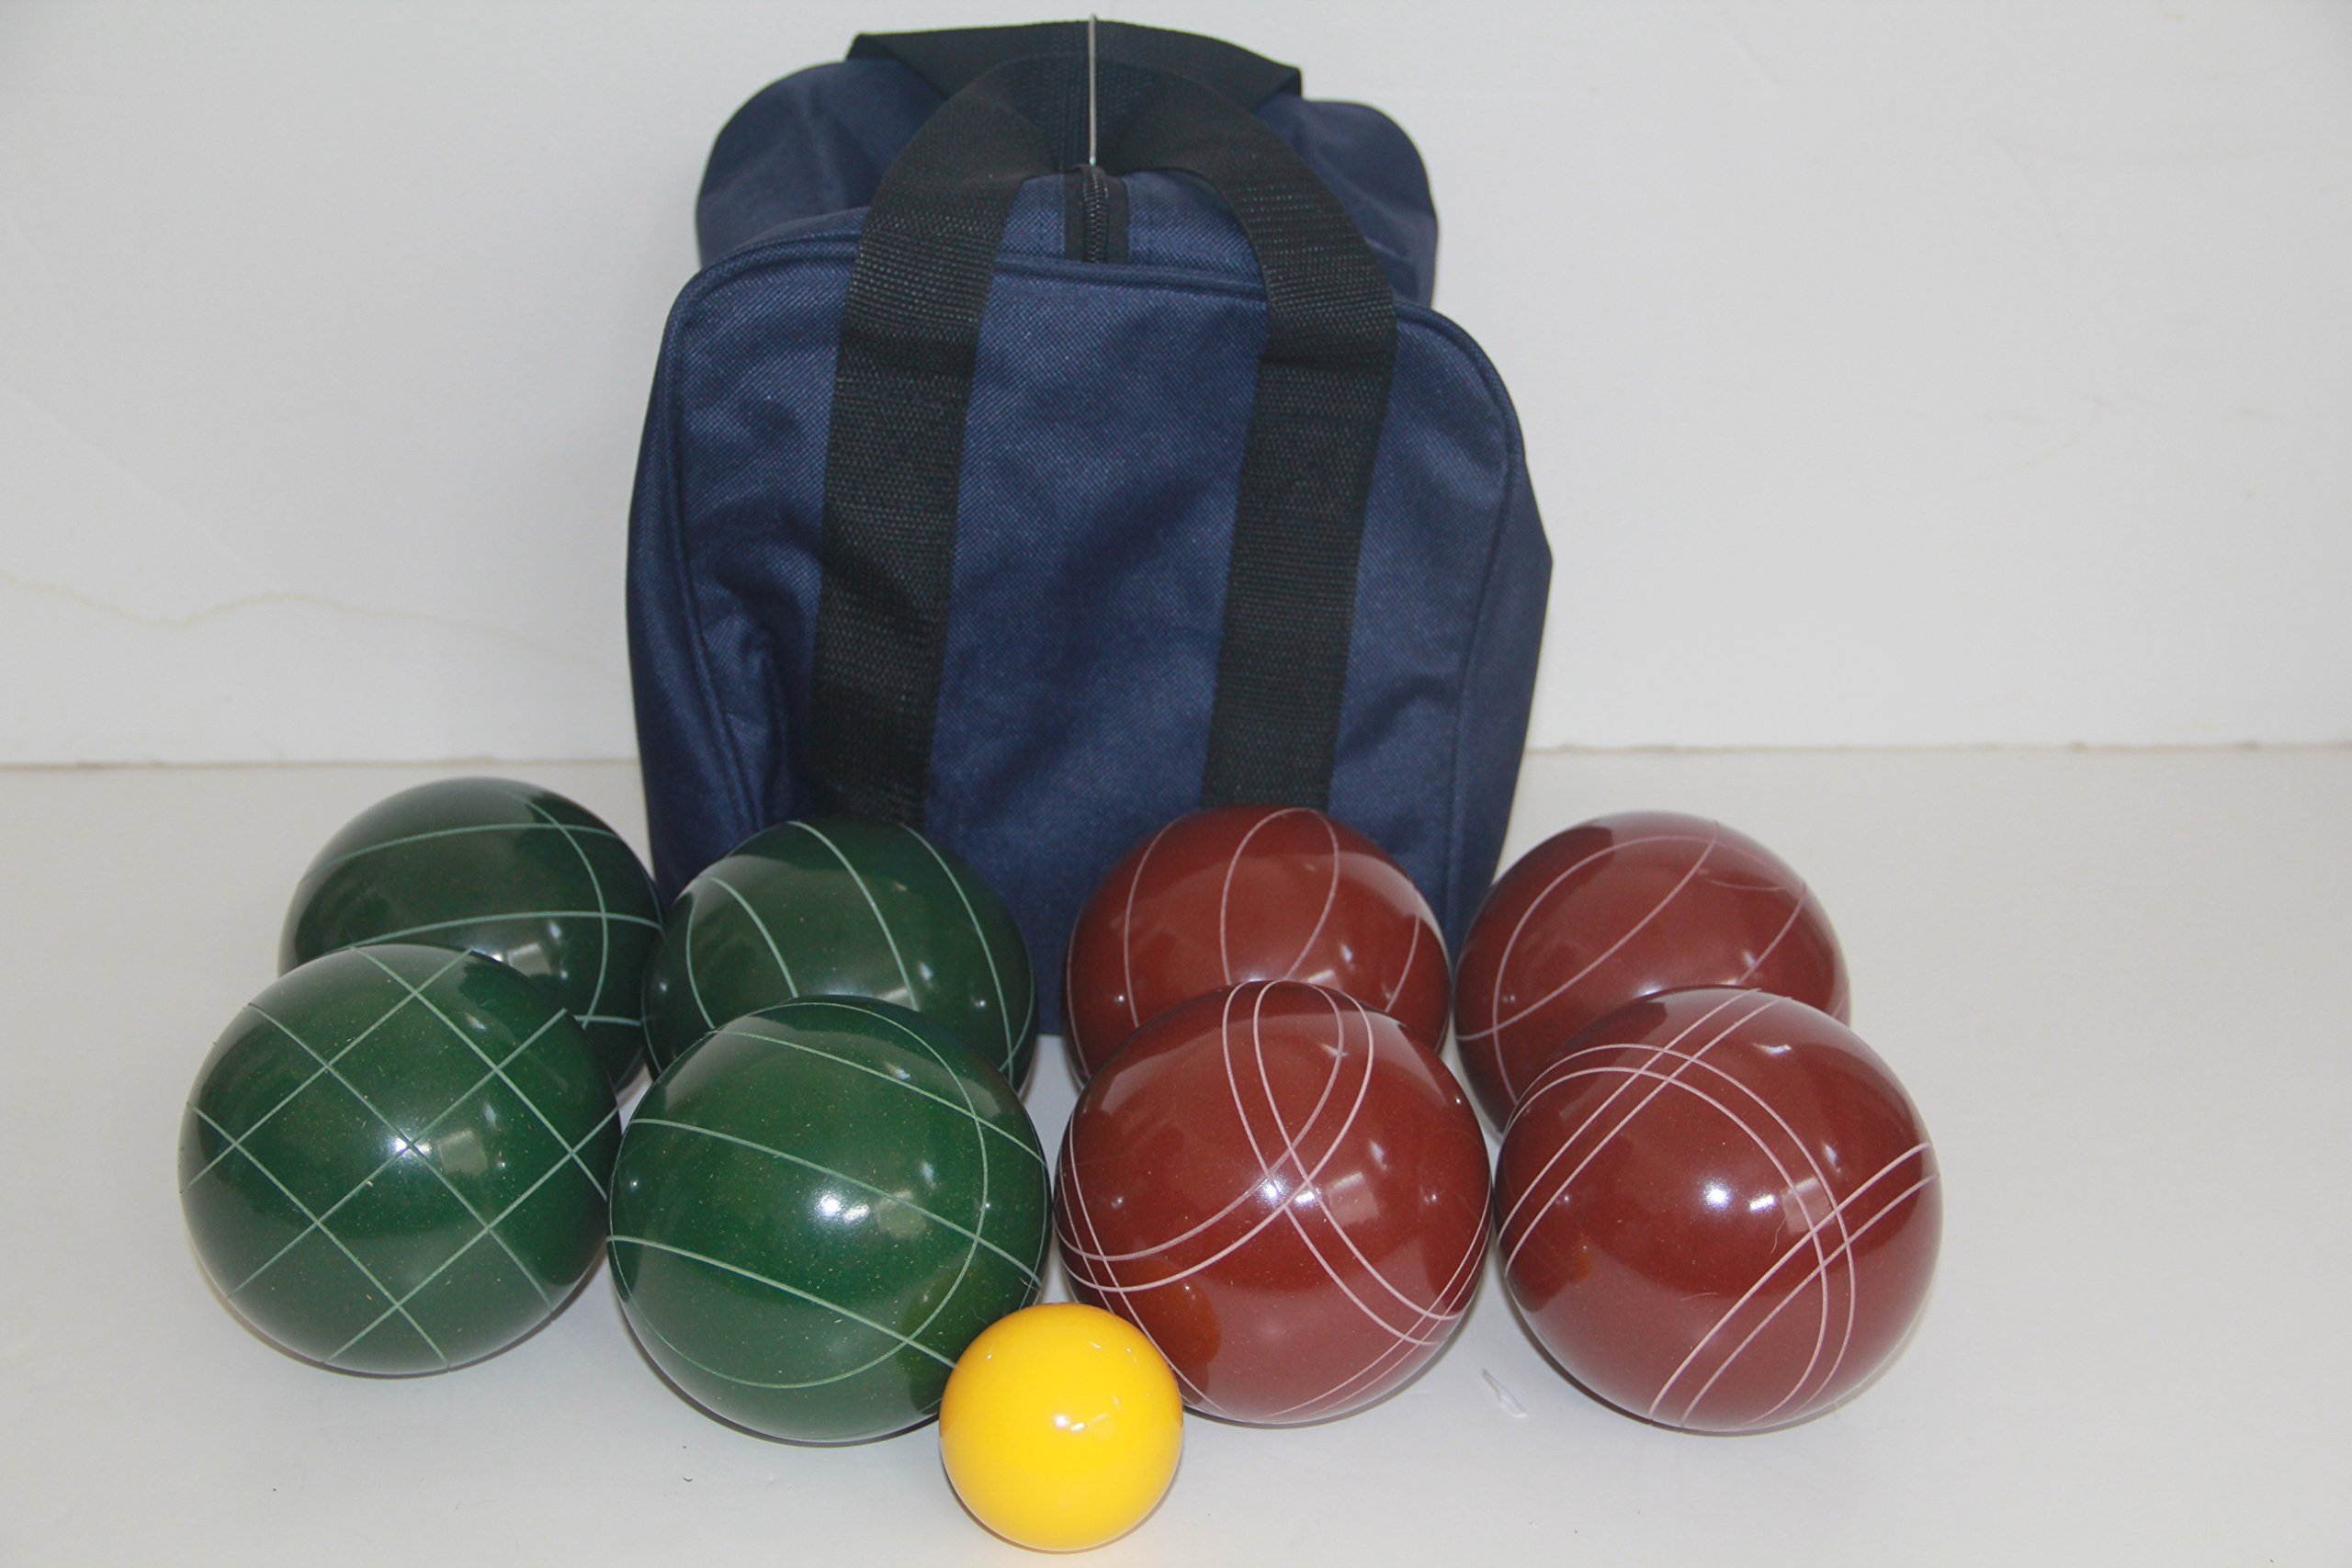 Premium Quality and American Made, 110mm EPCO Bocce Set - dark red and green balls and blue/black bag